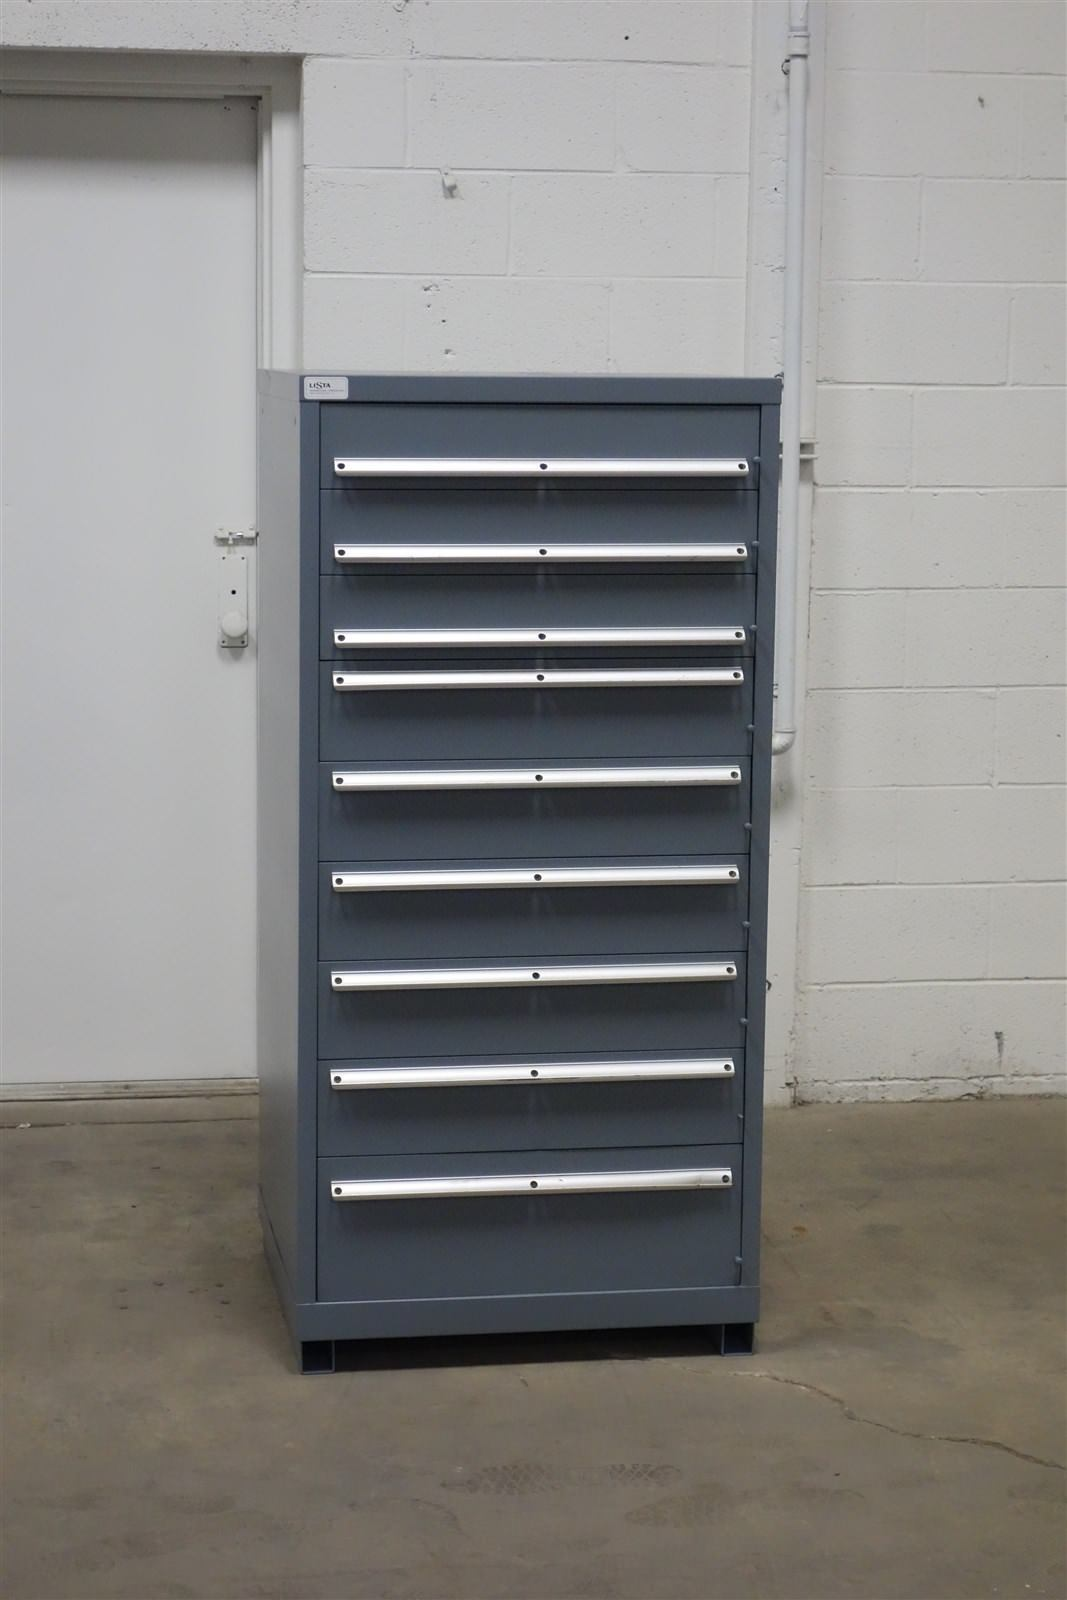 Used Lista 9 drawer cabinet industrial tool parts storage